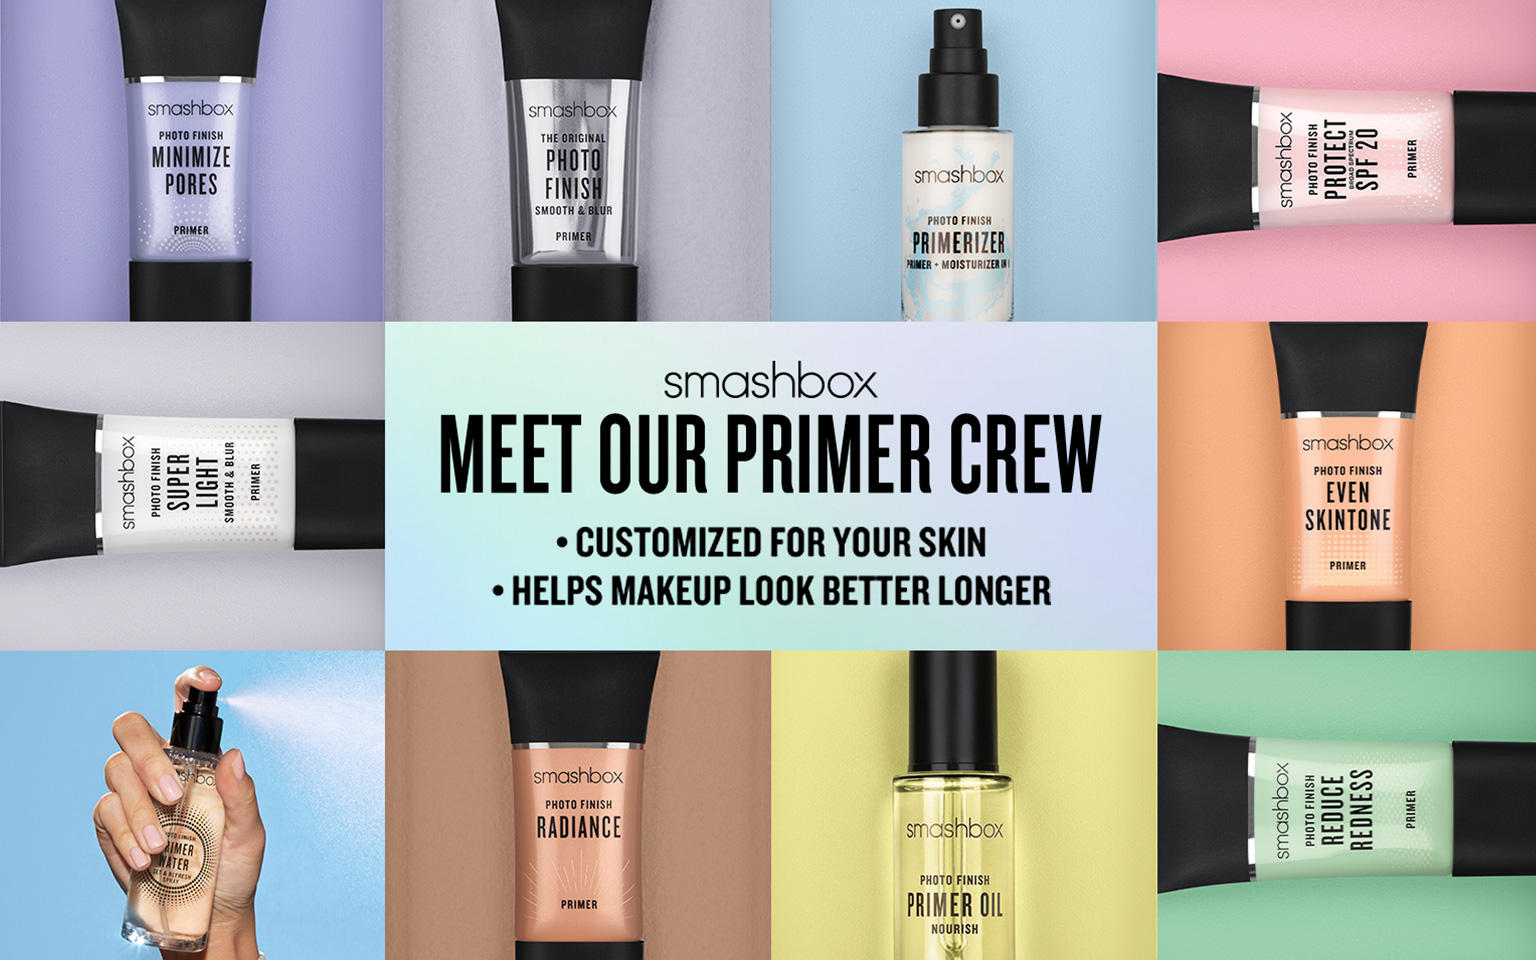 Smashbox. Meet our primer crew. Customized for your sking. Helps makeup look better longer.